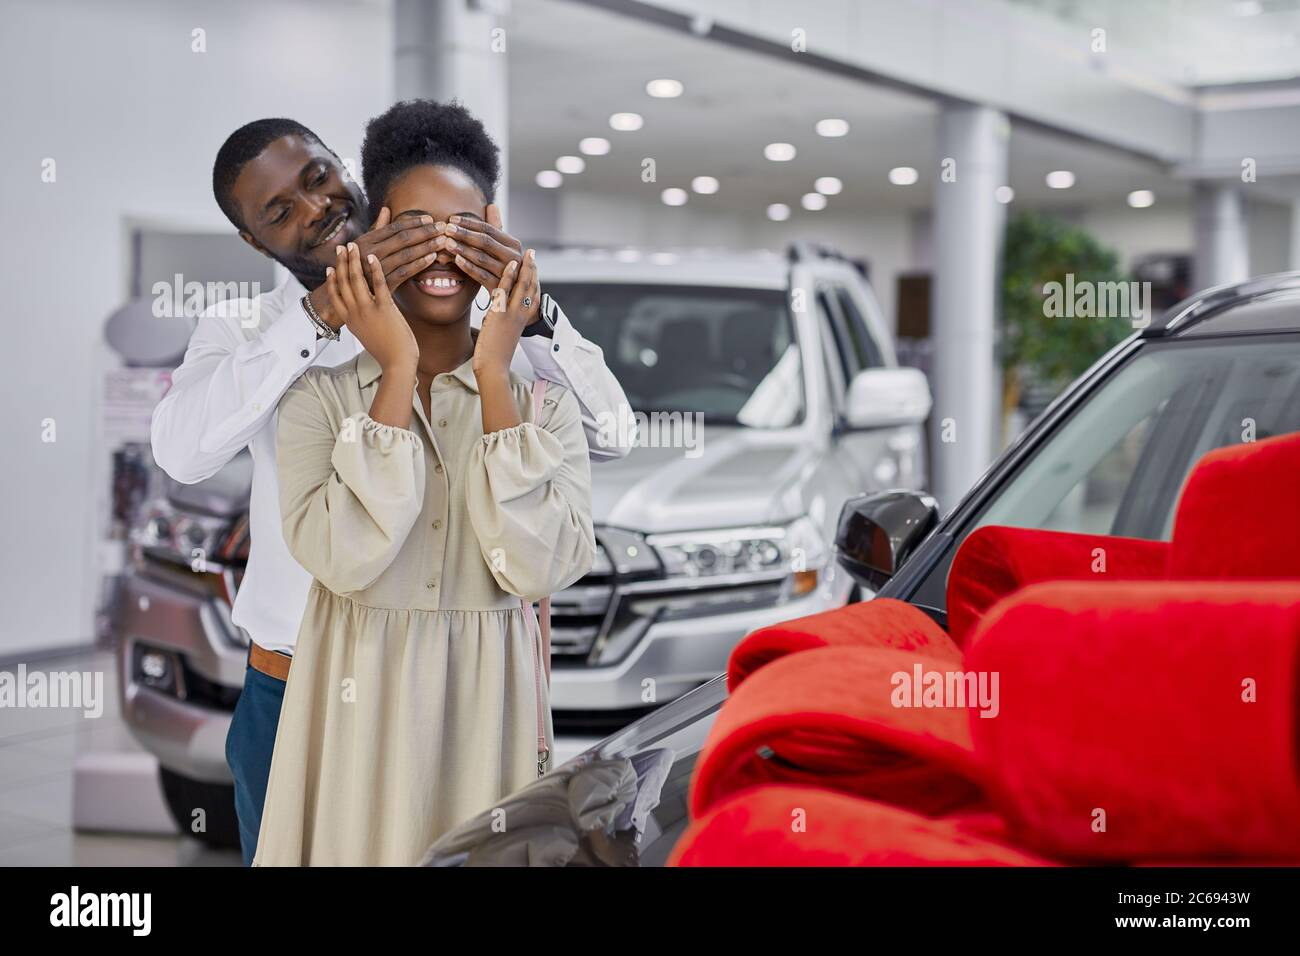 black man prepared gift to his wife, going to give new auto as a present, man closed woman's eyes during surprise. luxurious car is wrapped in red bow Stock Photo